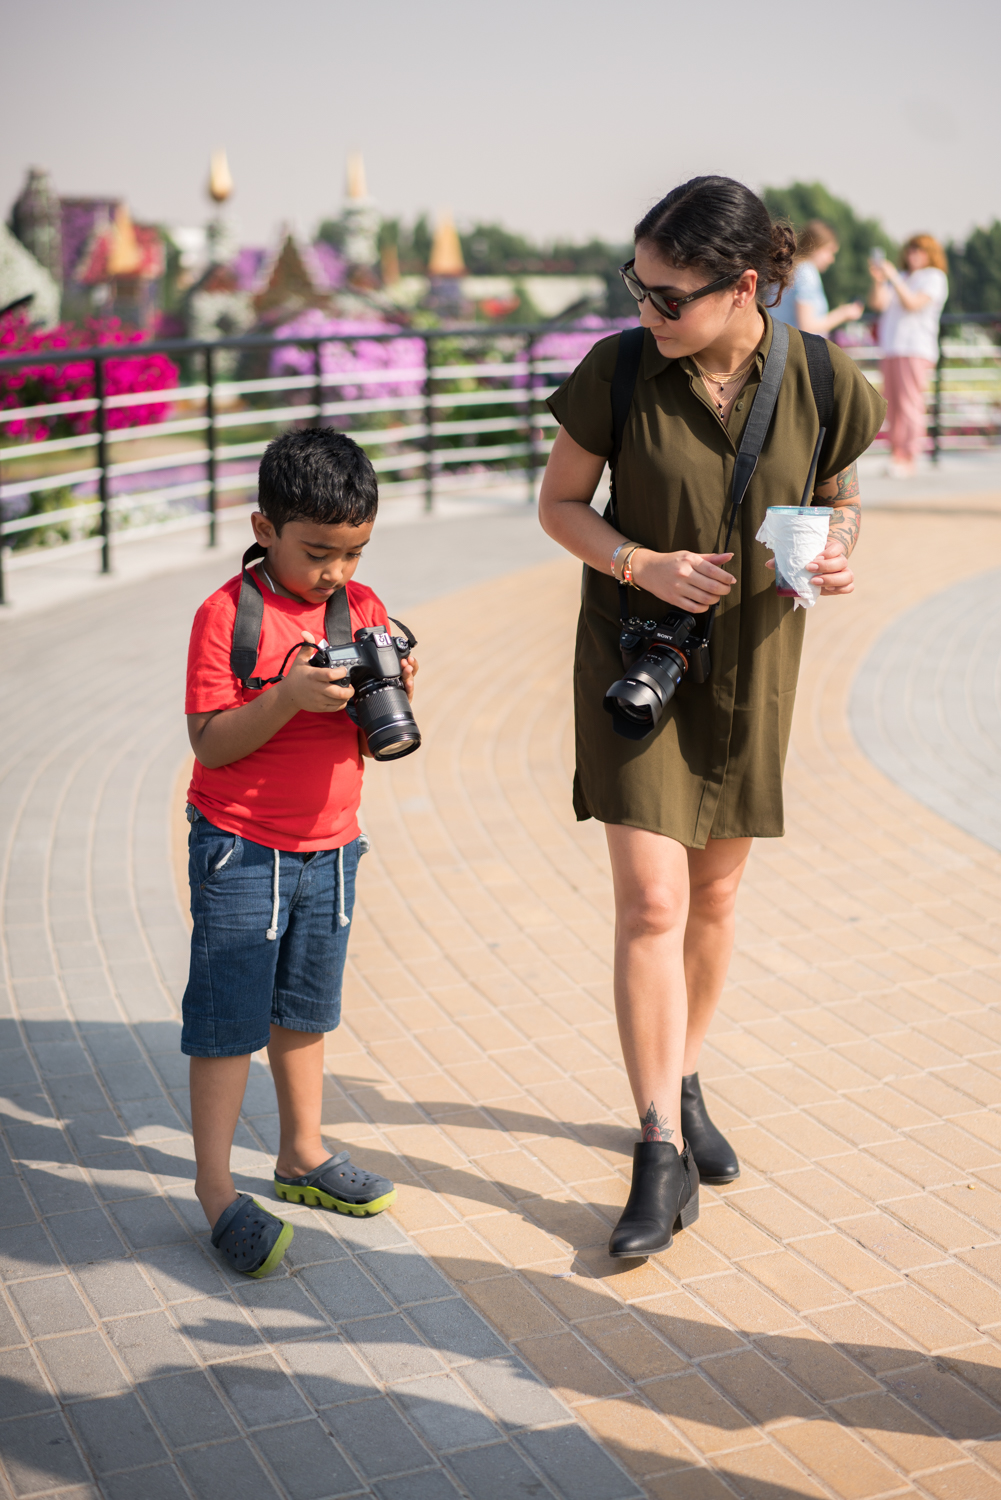 We saw this little guy taking pictures and asked him to get a shot of us. I didn't get to see it but Amanda approved of the photo.  Sony A7RII, Zeiss 55mm f/1.8 (iso100, f/1.8, 1/3200s)